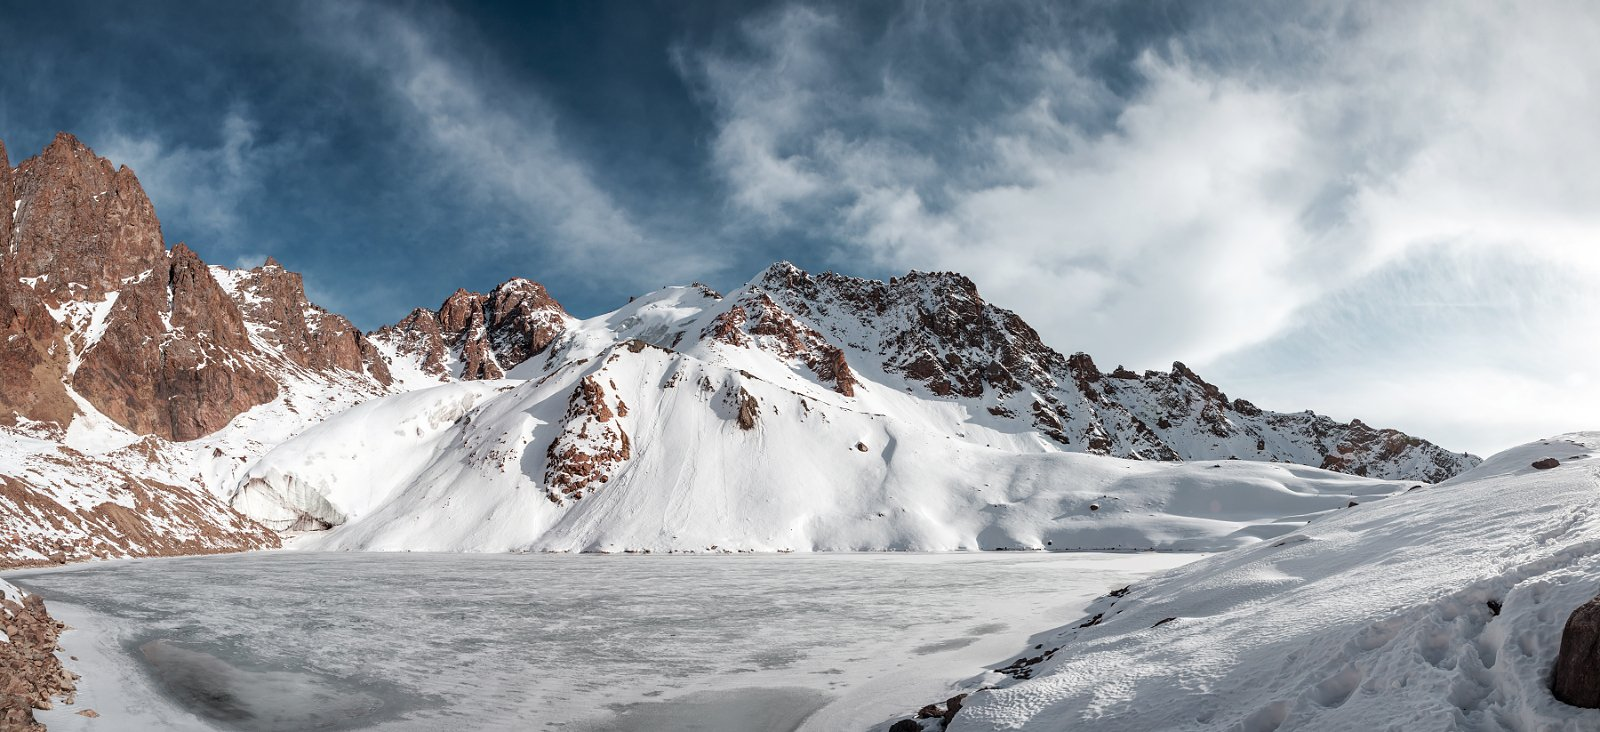 Almaty, Clouds, Glacier, Ice, Lake, Landscape, Mountain, Nature, Rocks, Sky, Snow, Winter, Anton Akhmatov